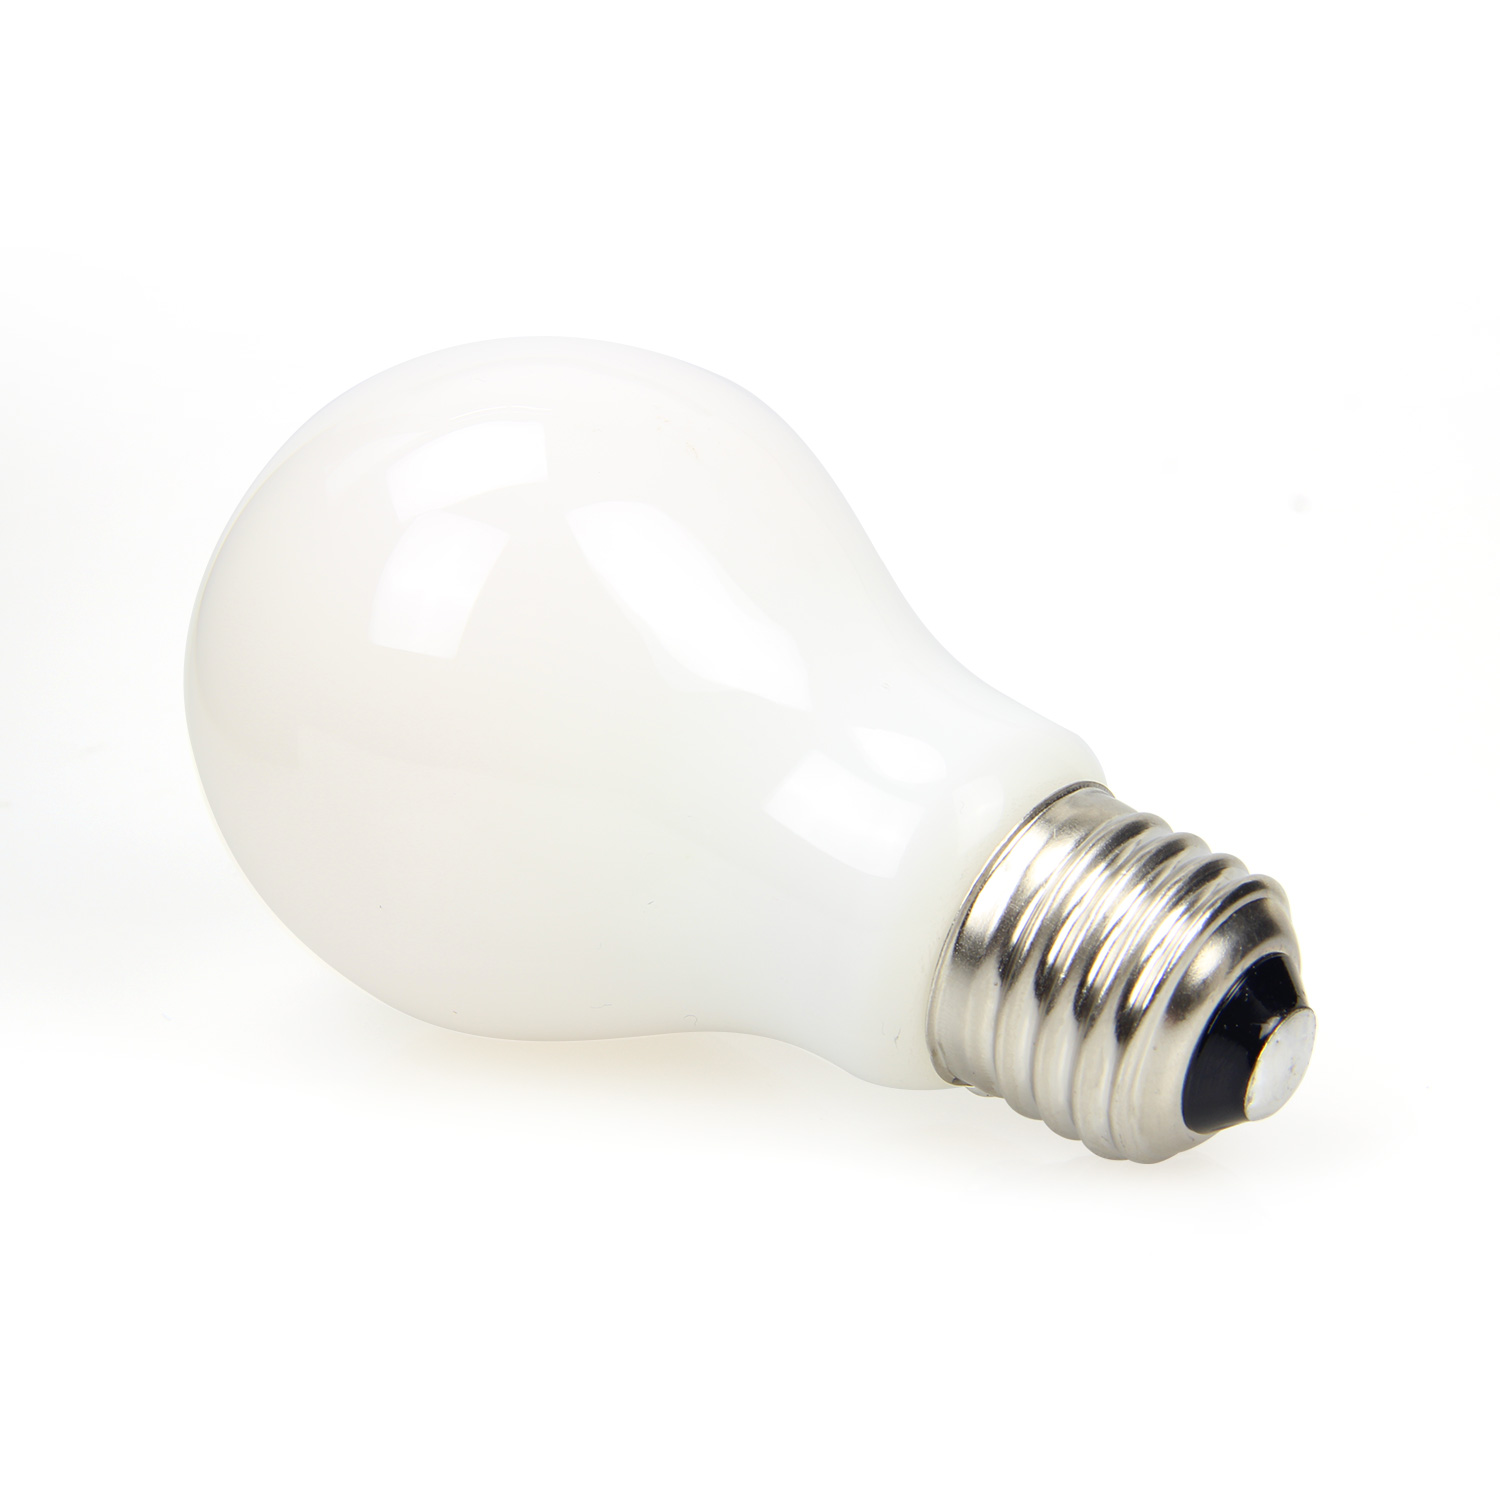 Dimmable A60 E26/ <strong>E27</strong>/ B22 2W/ 4W/ 6W/ 8W energy saving led filament bulb for house lighting